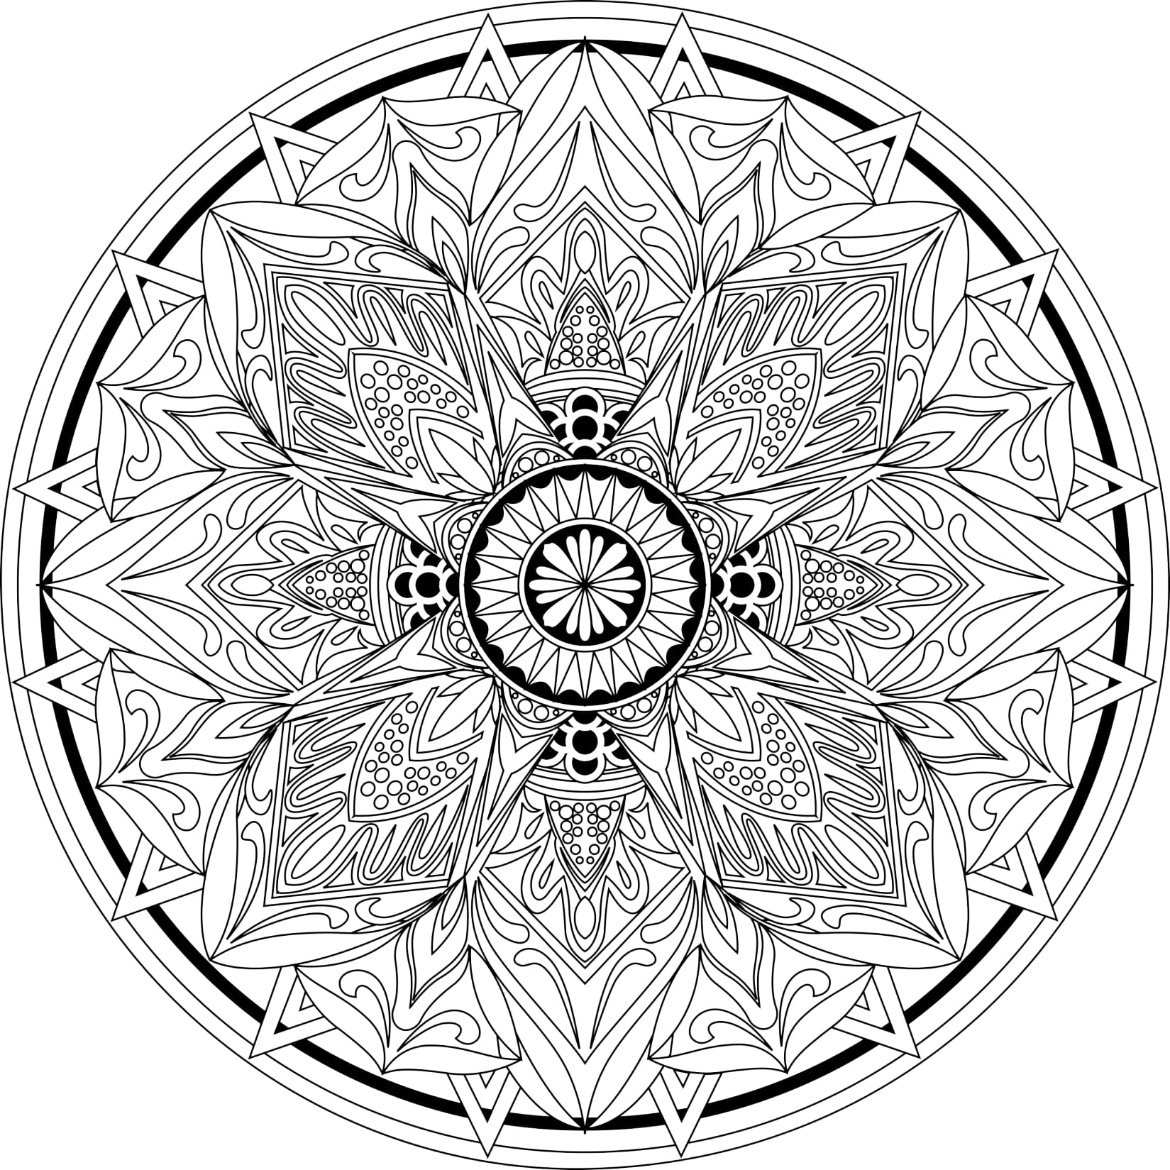 Mandalas To Color Volume 1 - Image 2